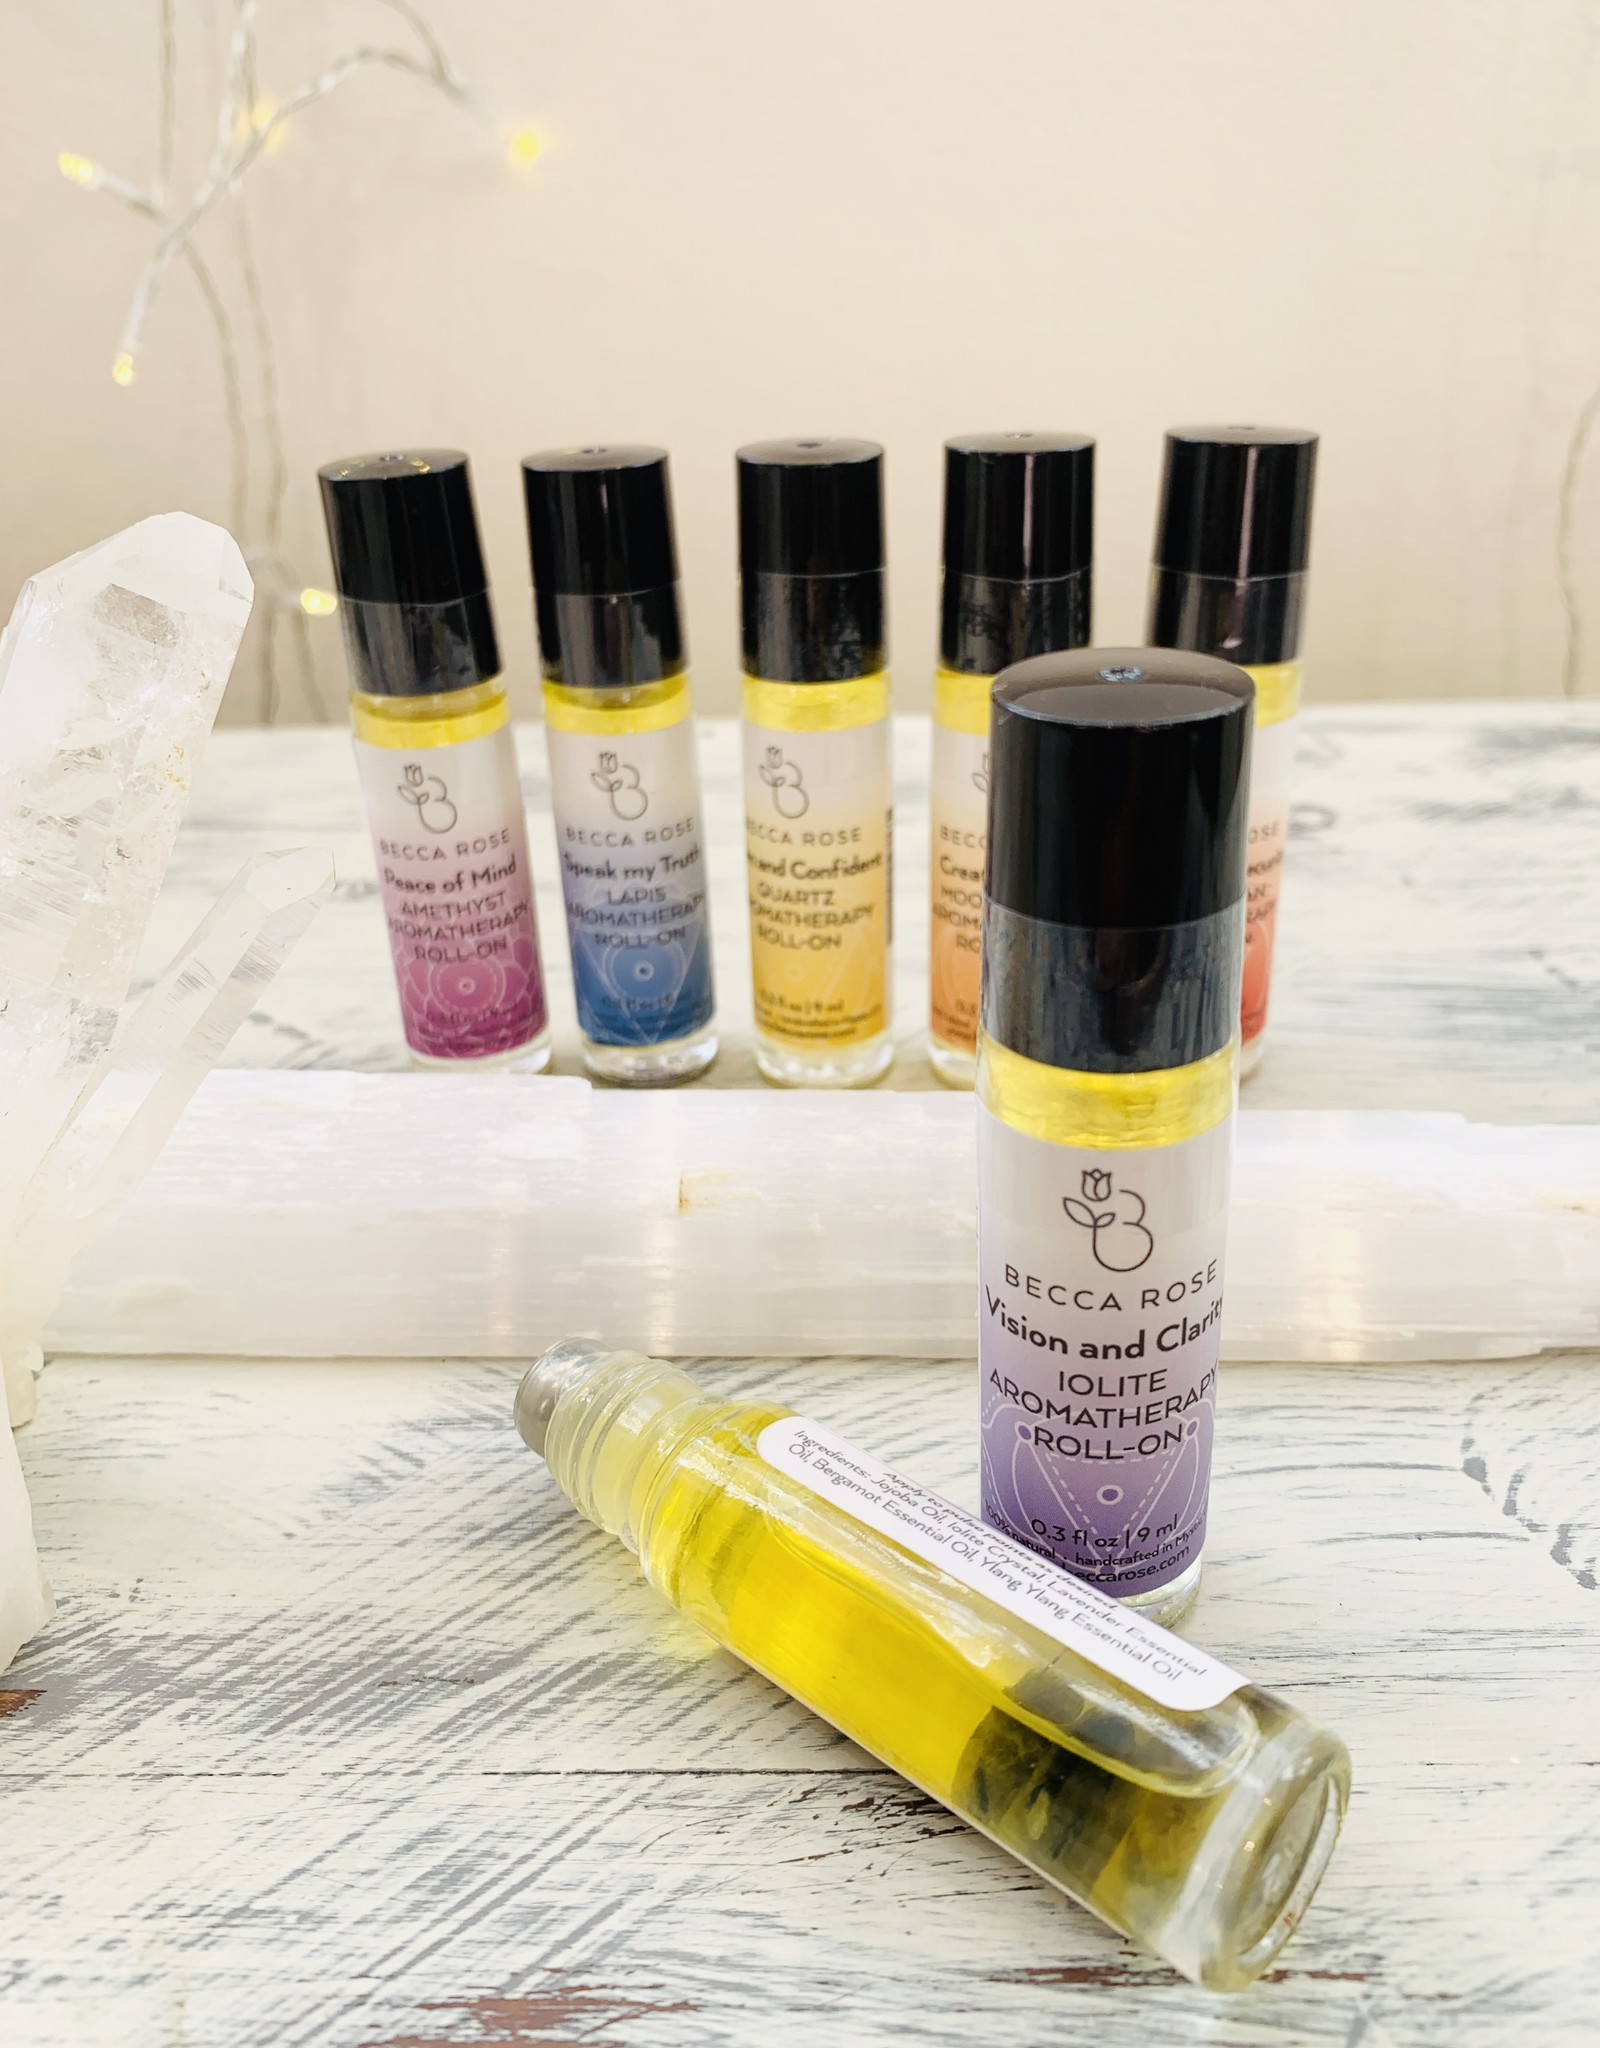 Becca Rose Roll-On: Third Eye Chakra- Vision and Clarity